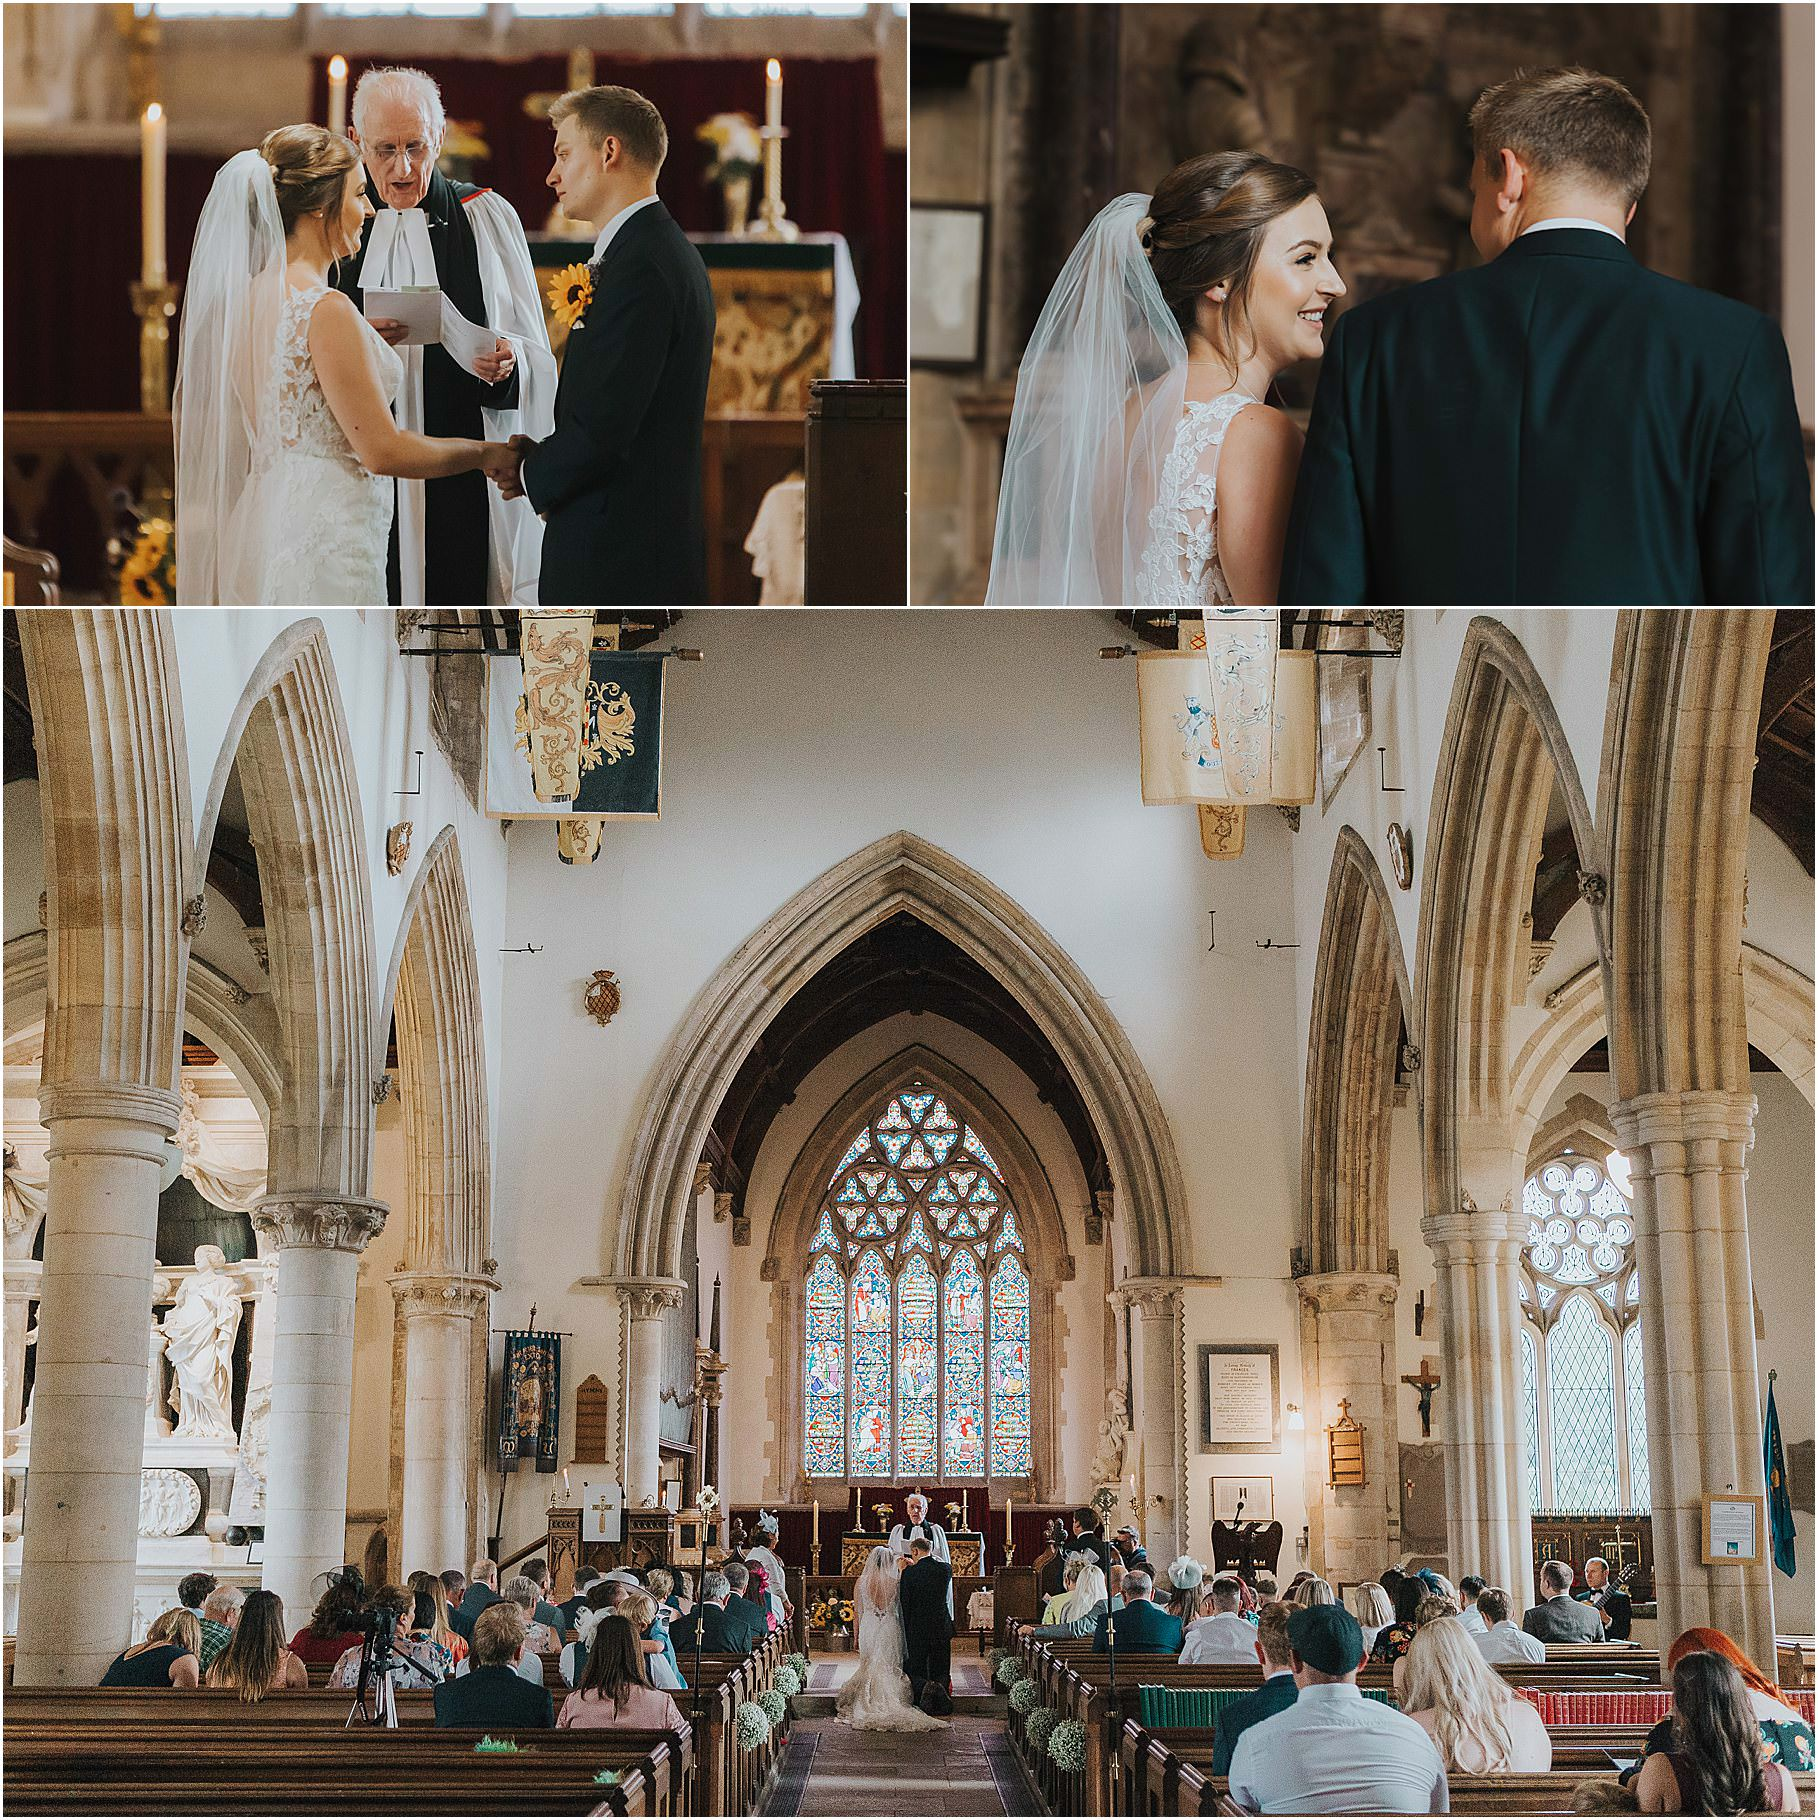 Rutland Weddings Exton Hall Exton Oakham Rutland Water Photographer 1052 - Mr and Mrs Barker // RUTLAND WEDDING